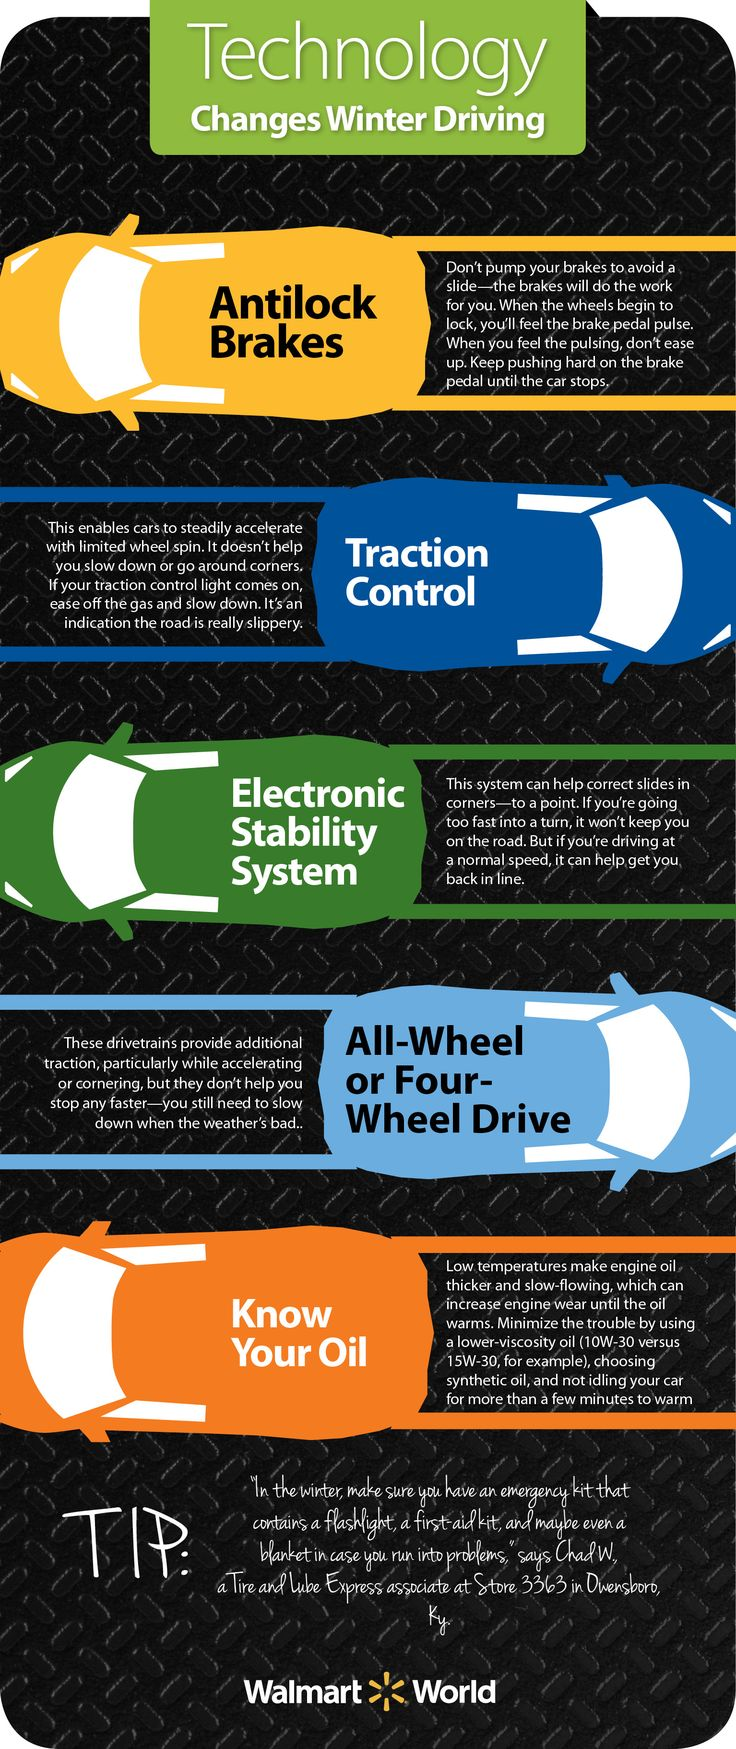 In many cases, technology, like antilock brakes and traction control, is changing how you should drive. Follow these tips for safe winter driving. #snow #ice #carsafety